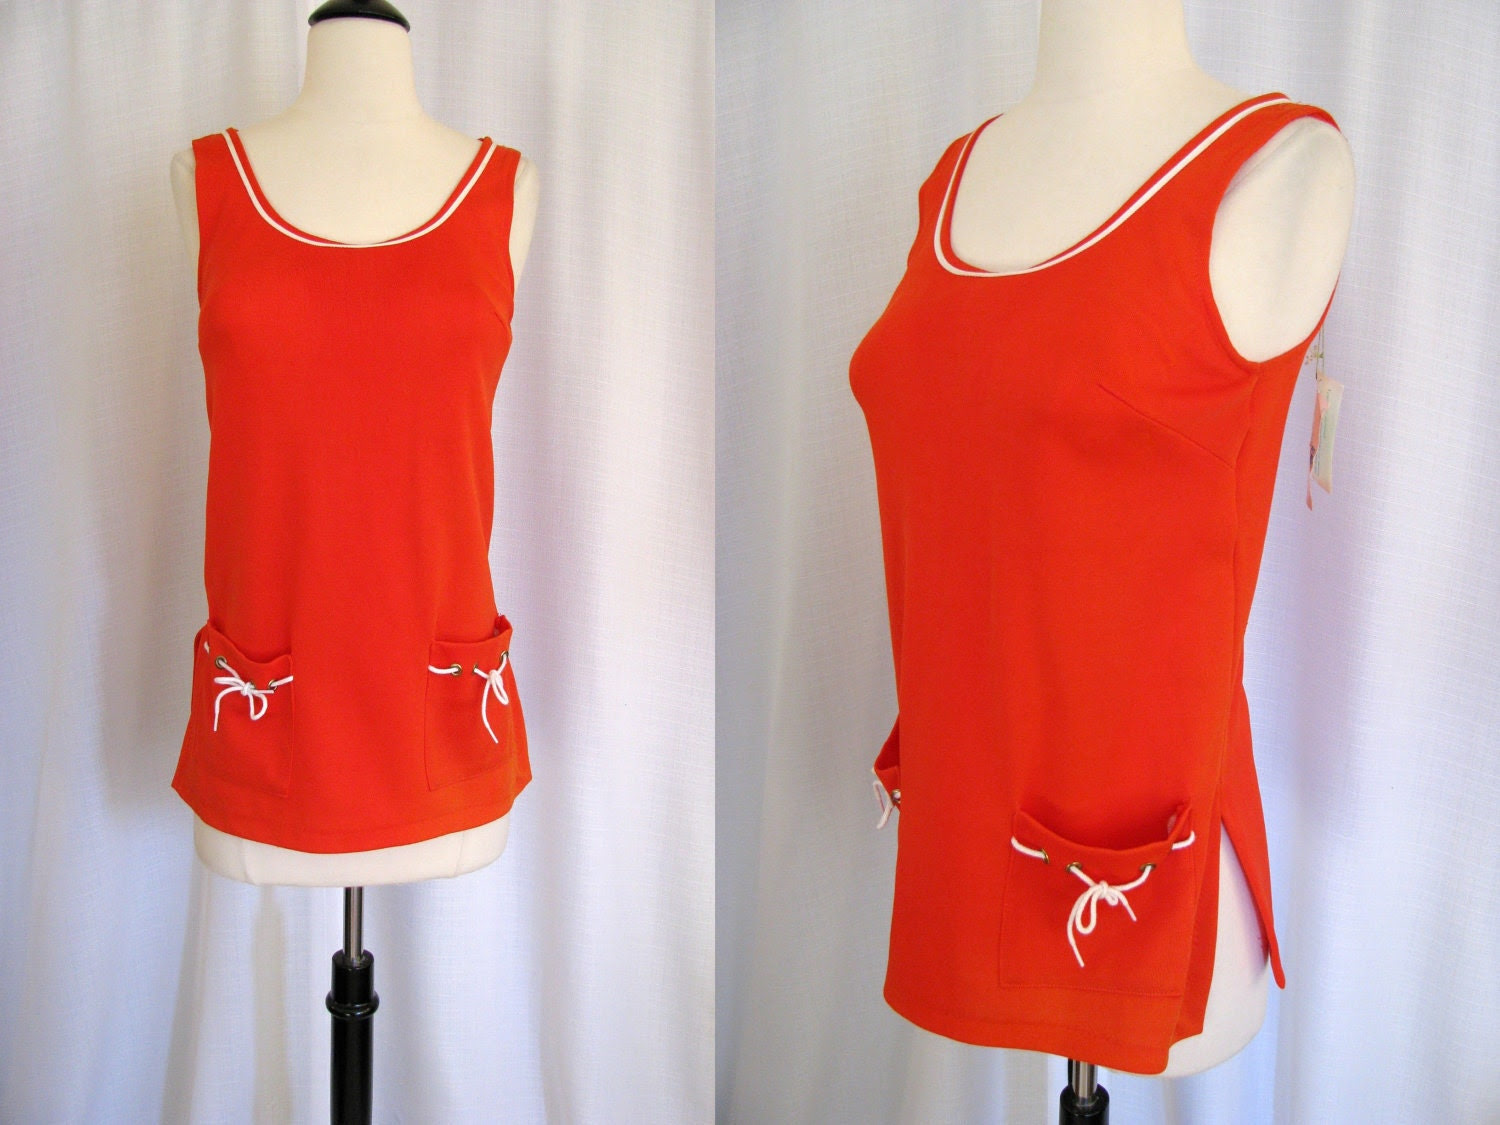 Vintage 1960s Carol Brent Tangerine Orange and White Swimsuit Top with Original Tags - NWT Size S